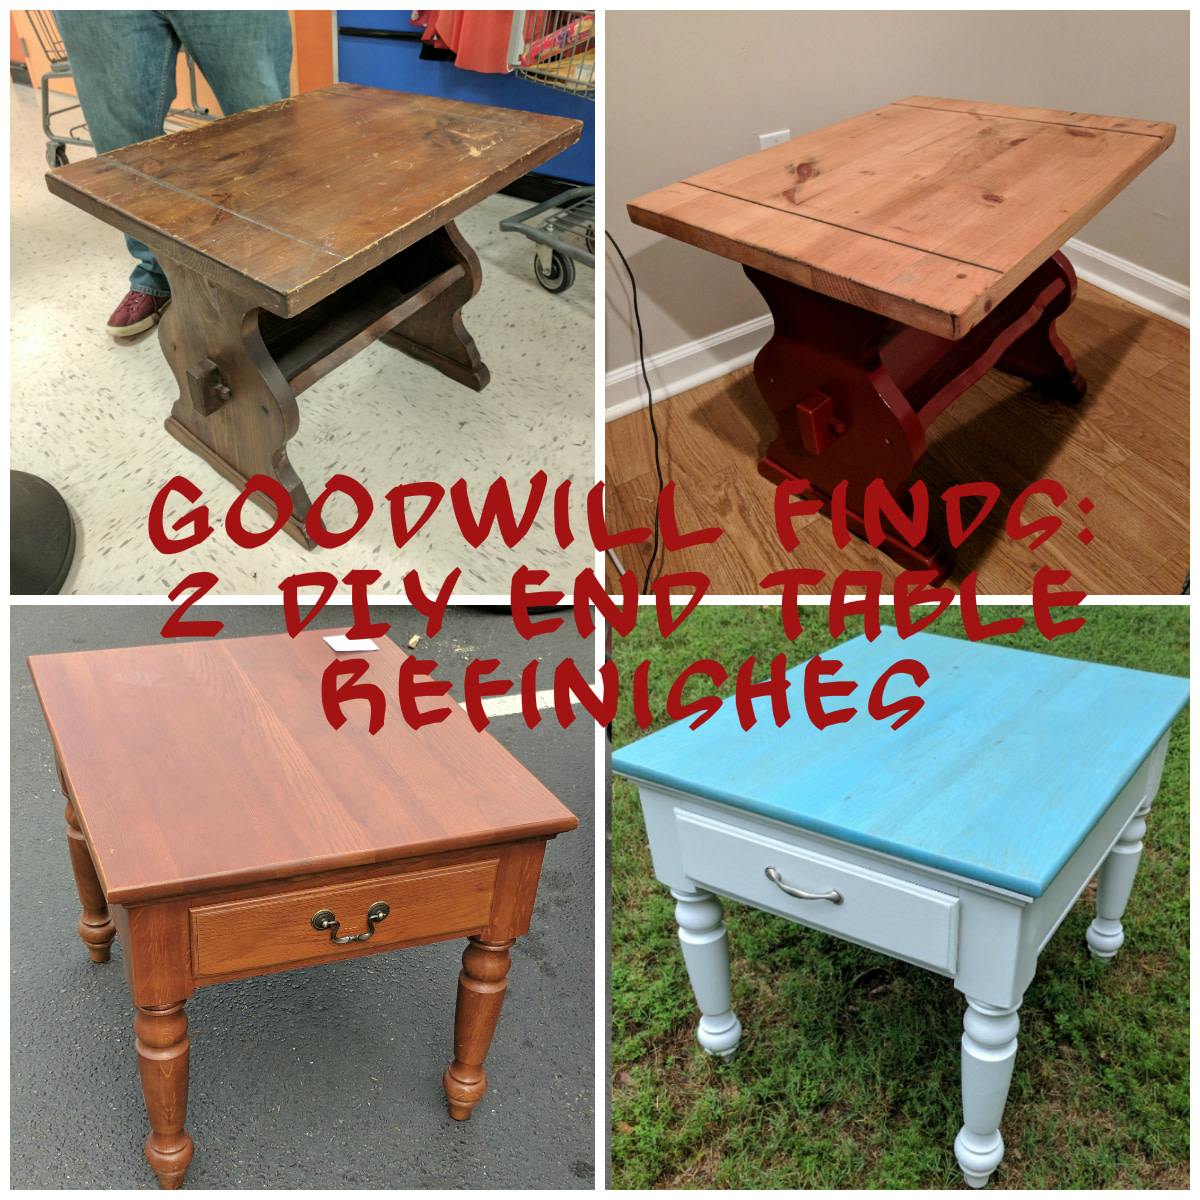 In this article we'll discuss two awesome end table refinishes that I did last summer!